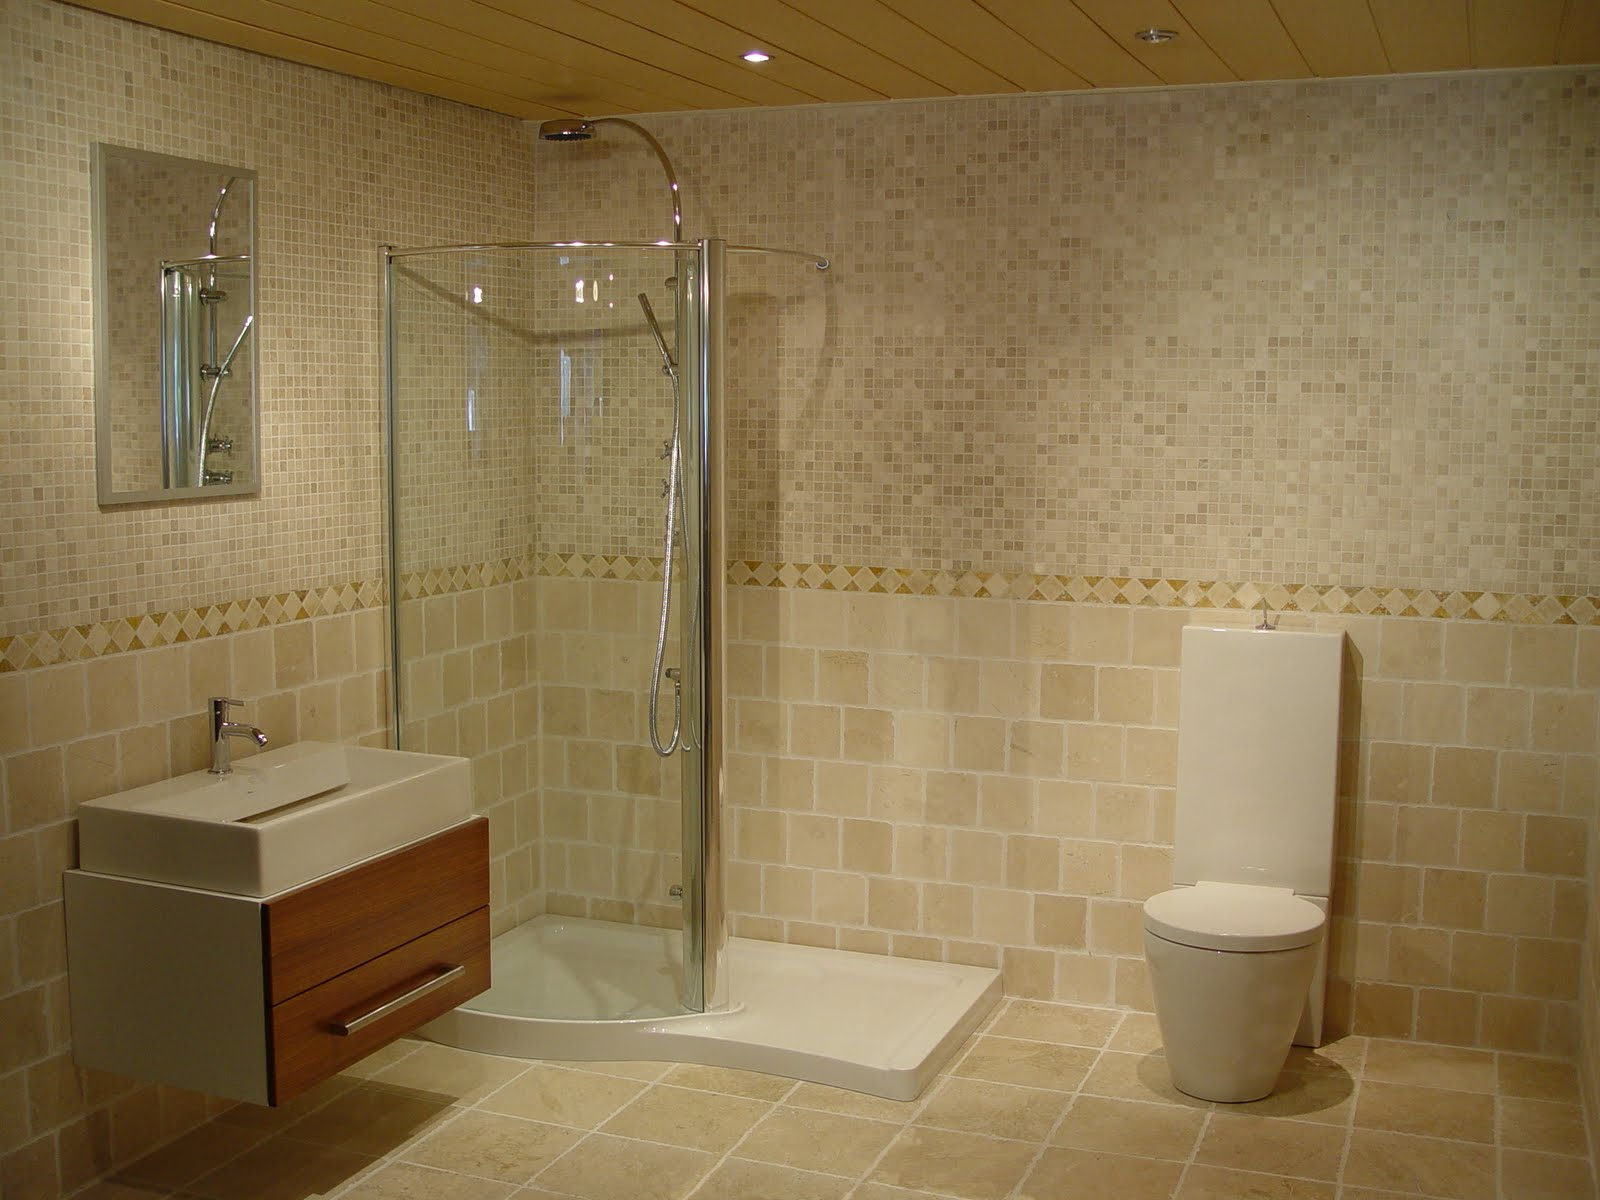 Amazing Best Small Bathroom Tile Design 1600 x 1200 · 174 kB · jpeg